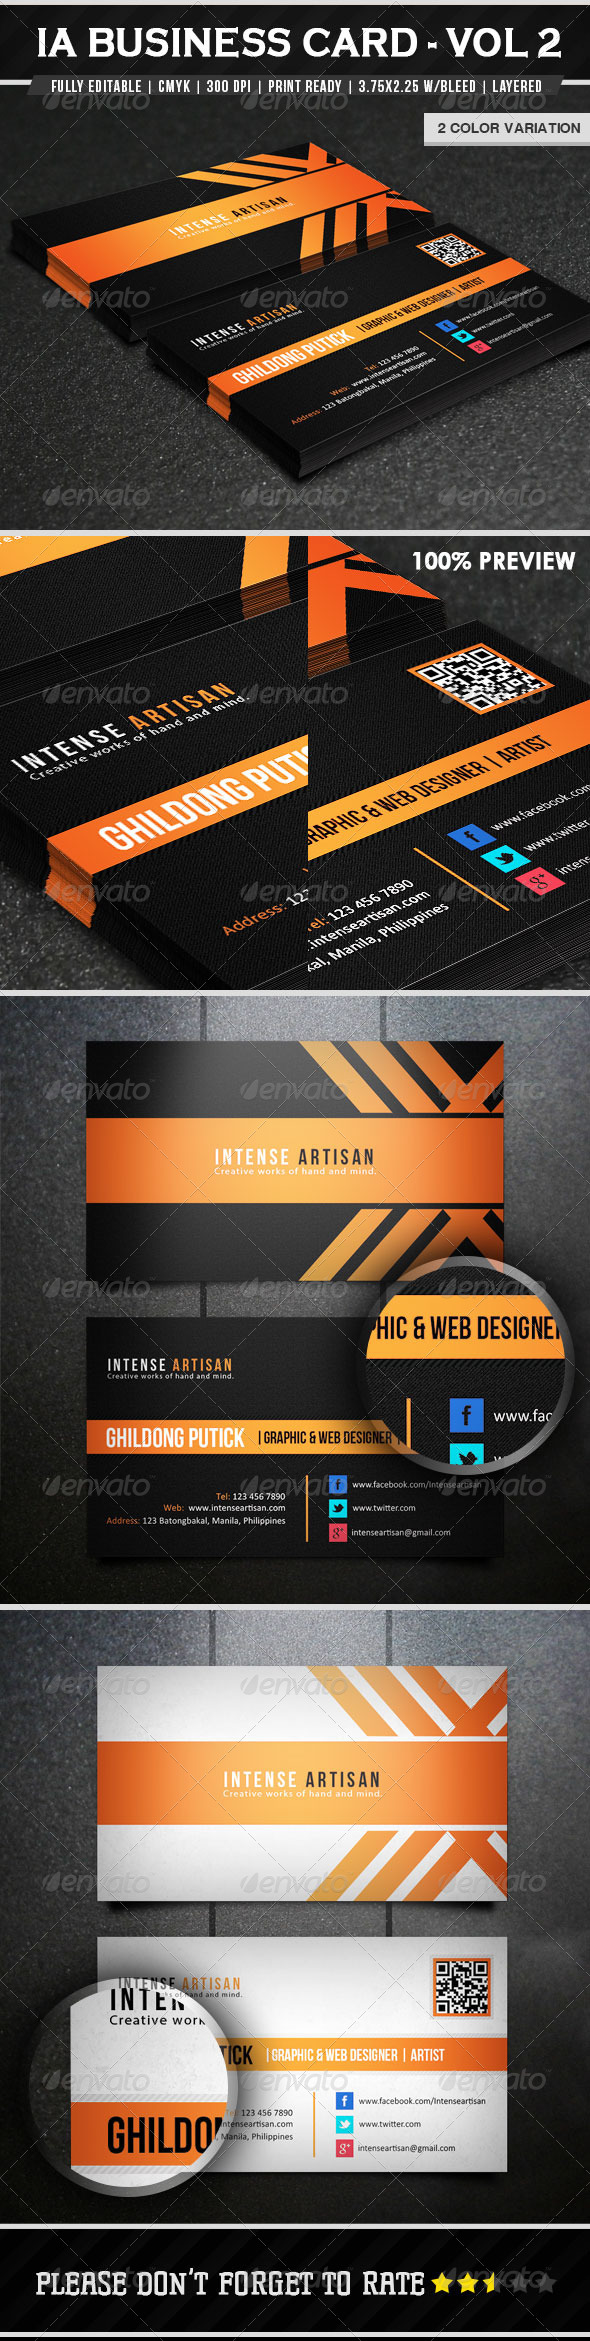 GraphicRiver Intense Artisan Business Card Vol 1 4902790